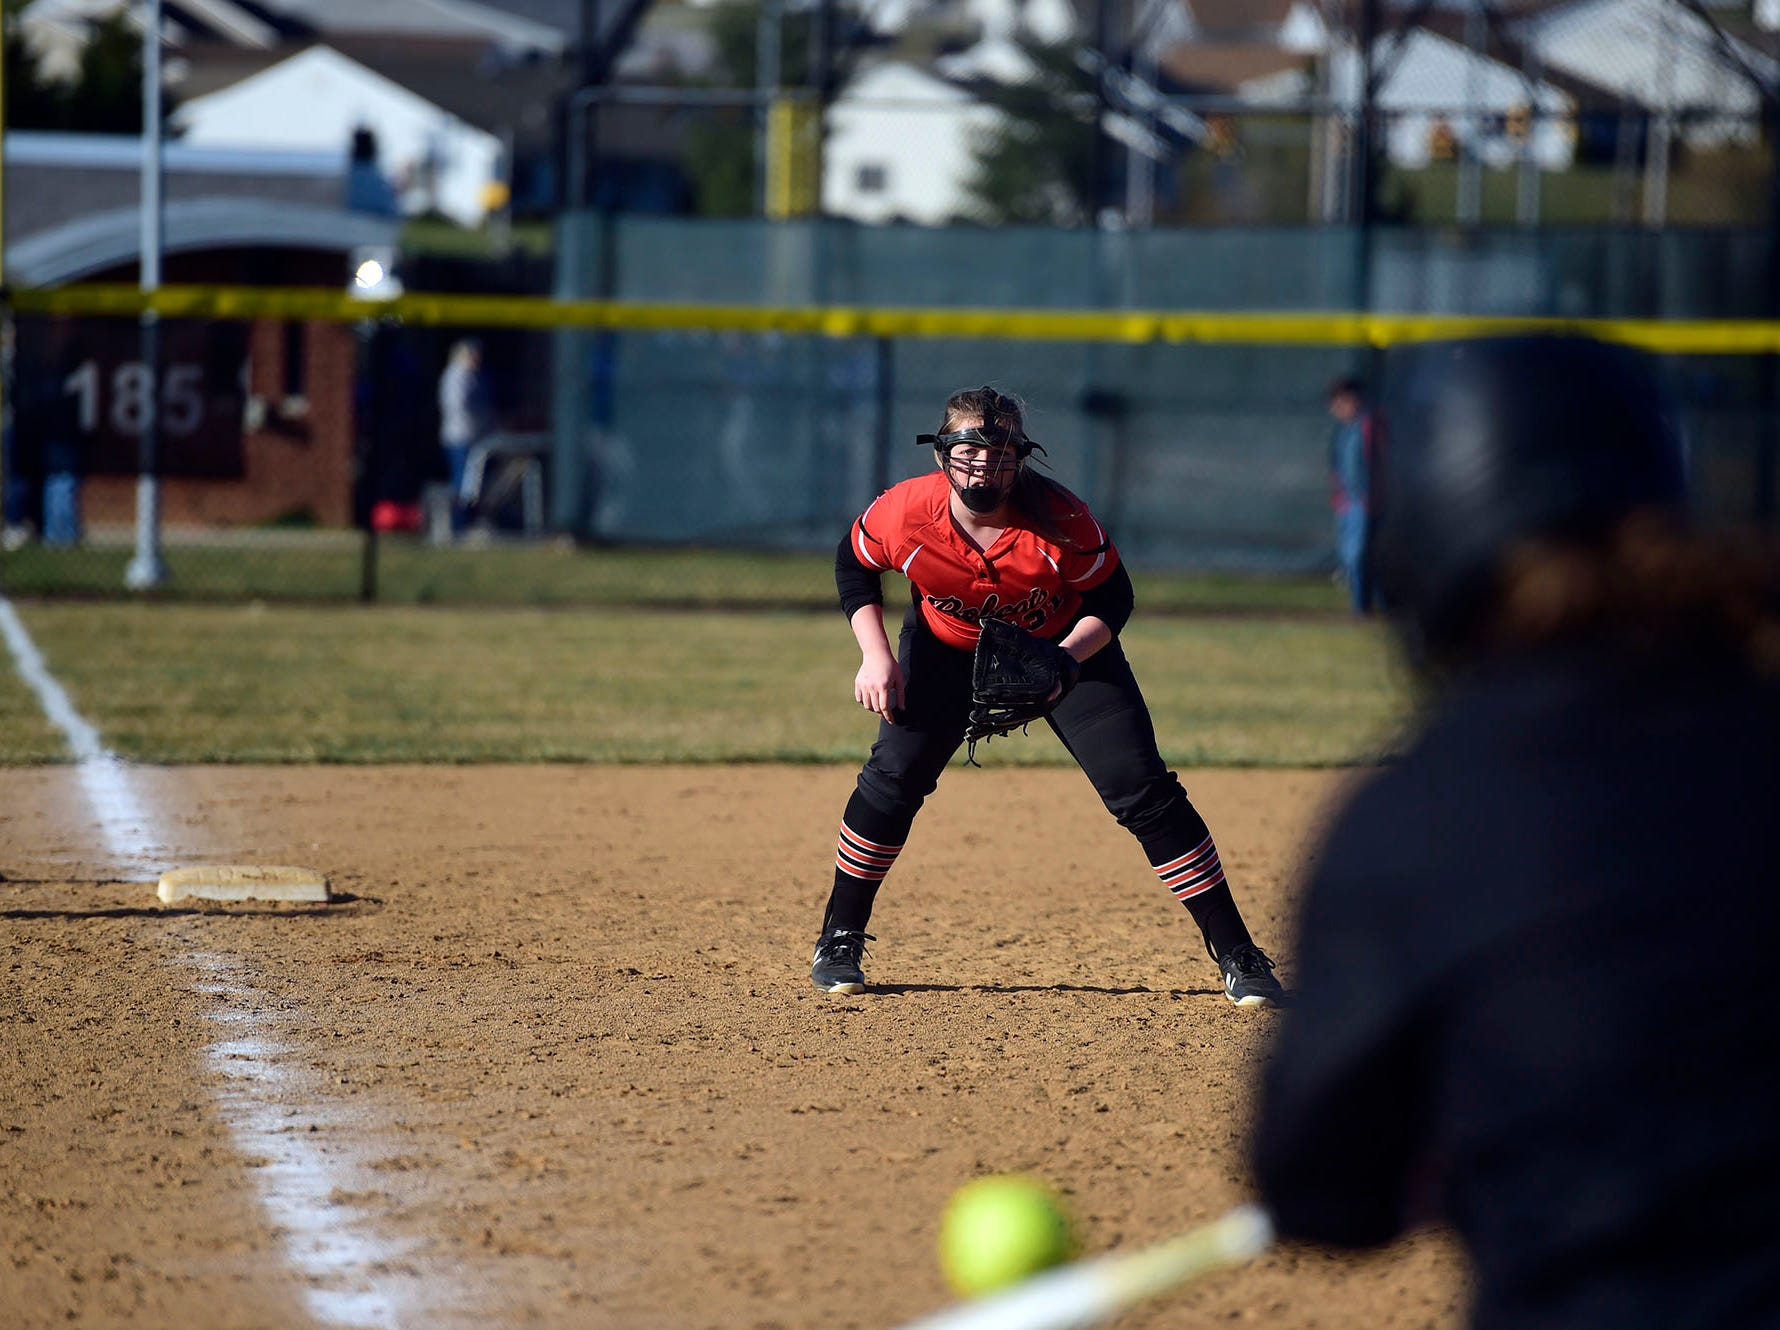 Northeastern third baseman Marissa Kipp stares down a Spring Grove hitter Wednesday, April 3, 2019.